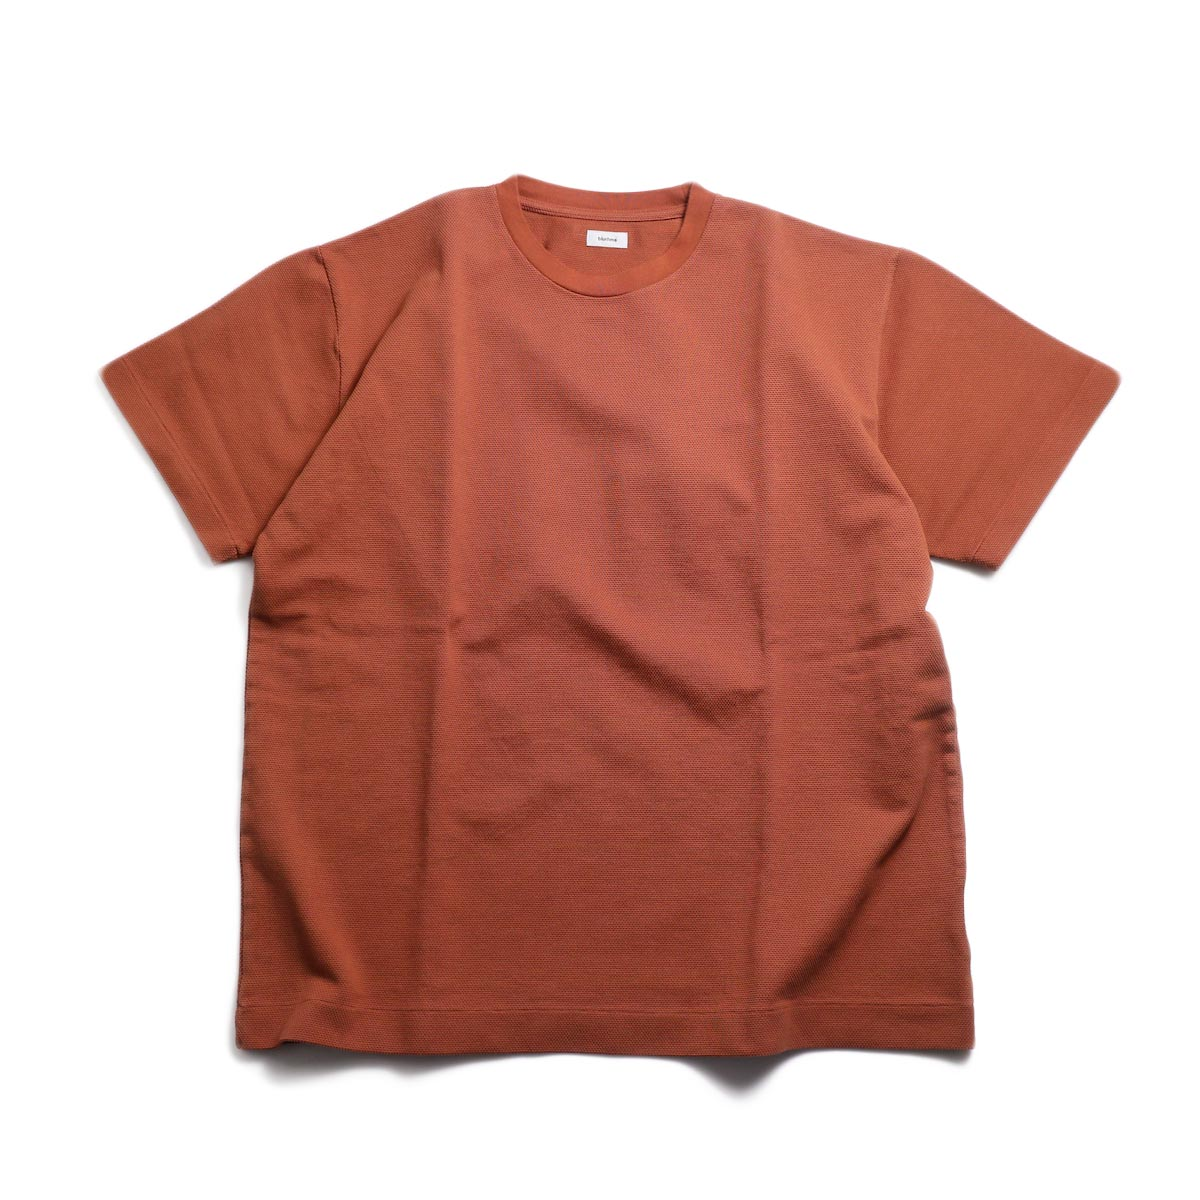 blurhms / Seed Stitch Box Tee -Ash Orange